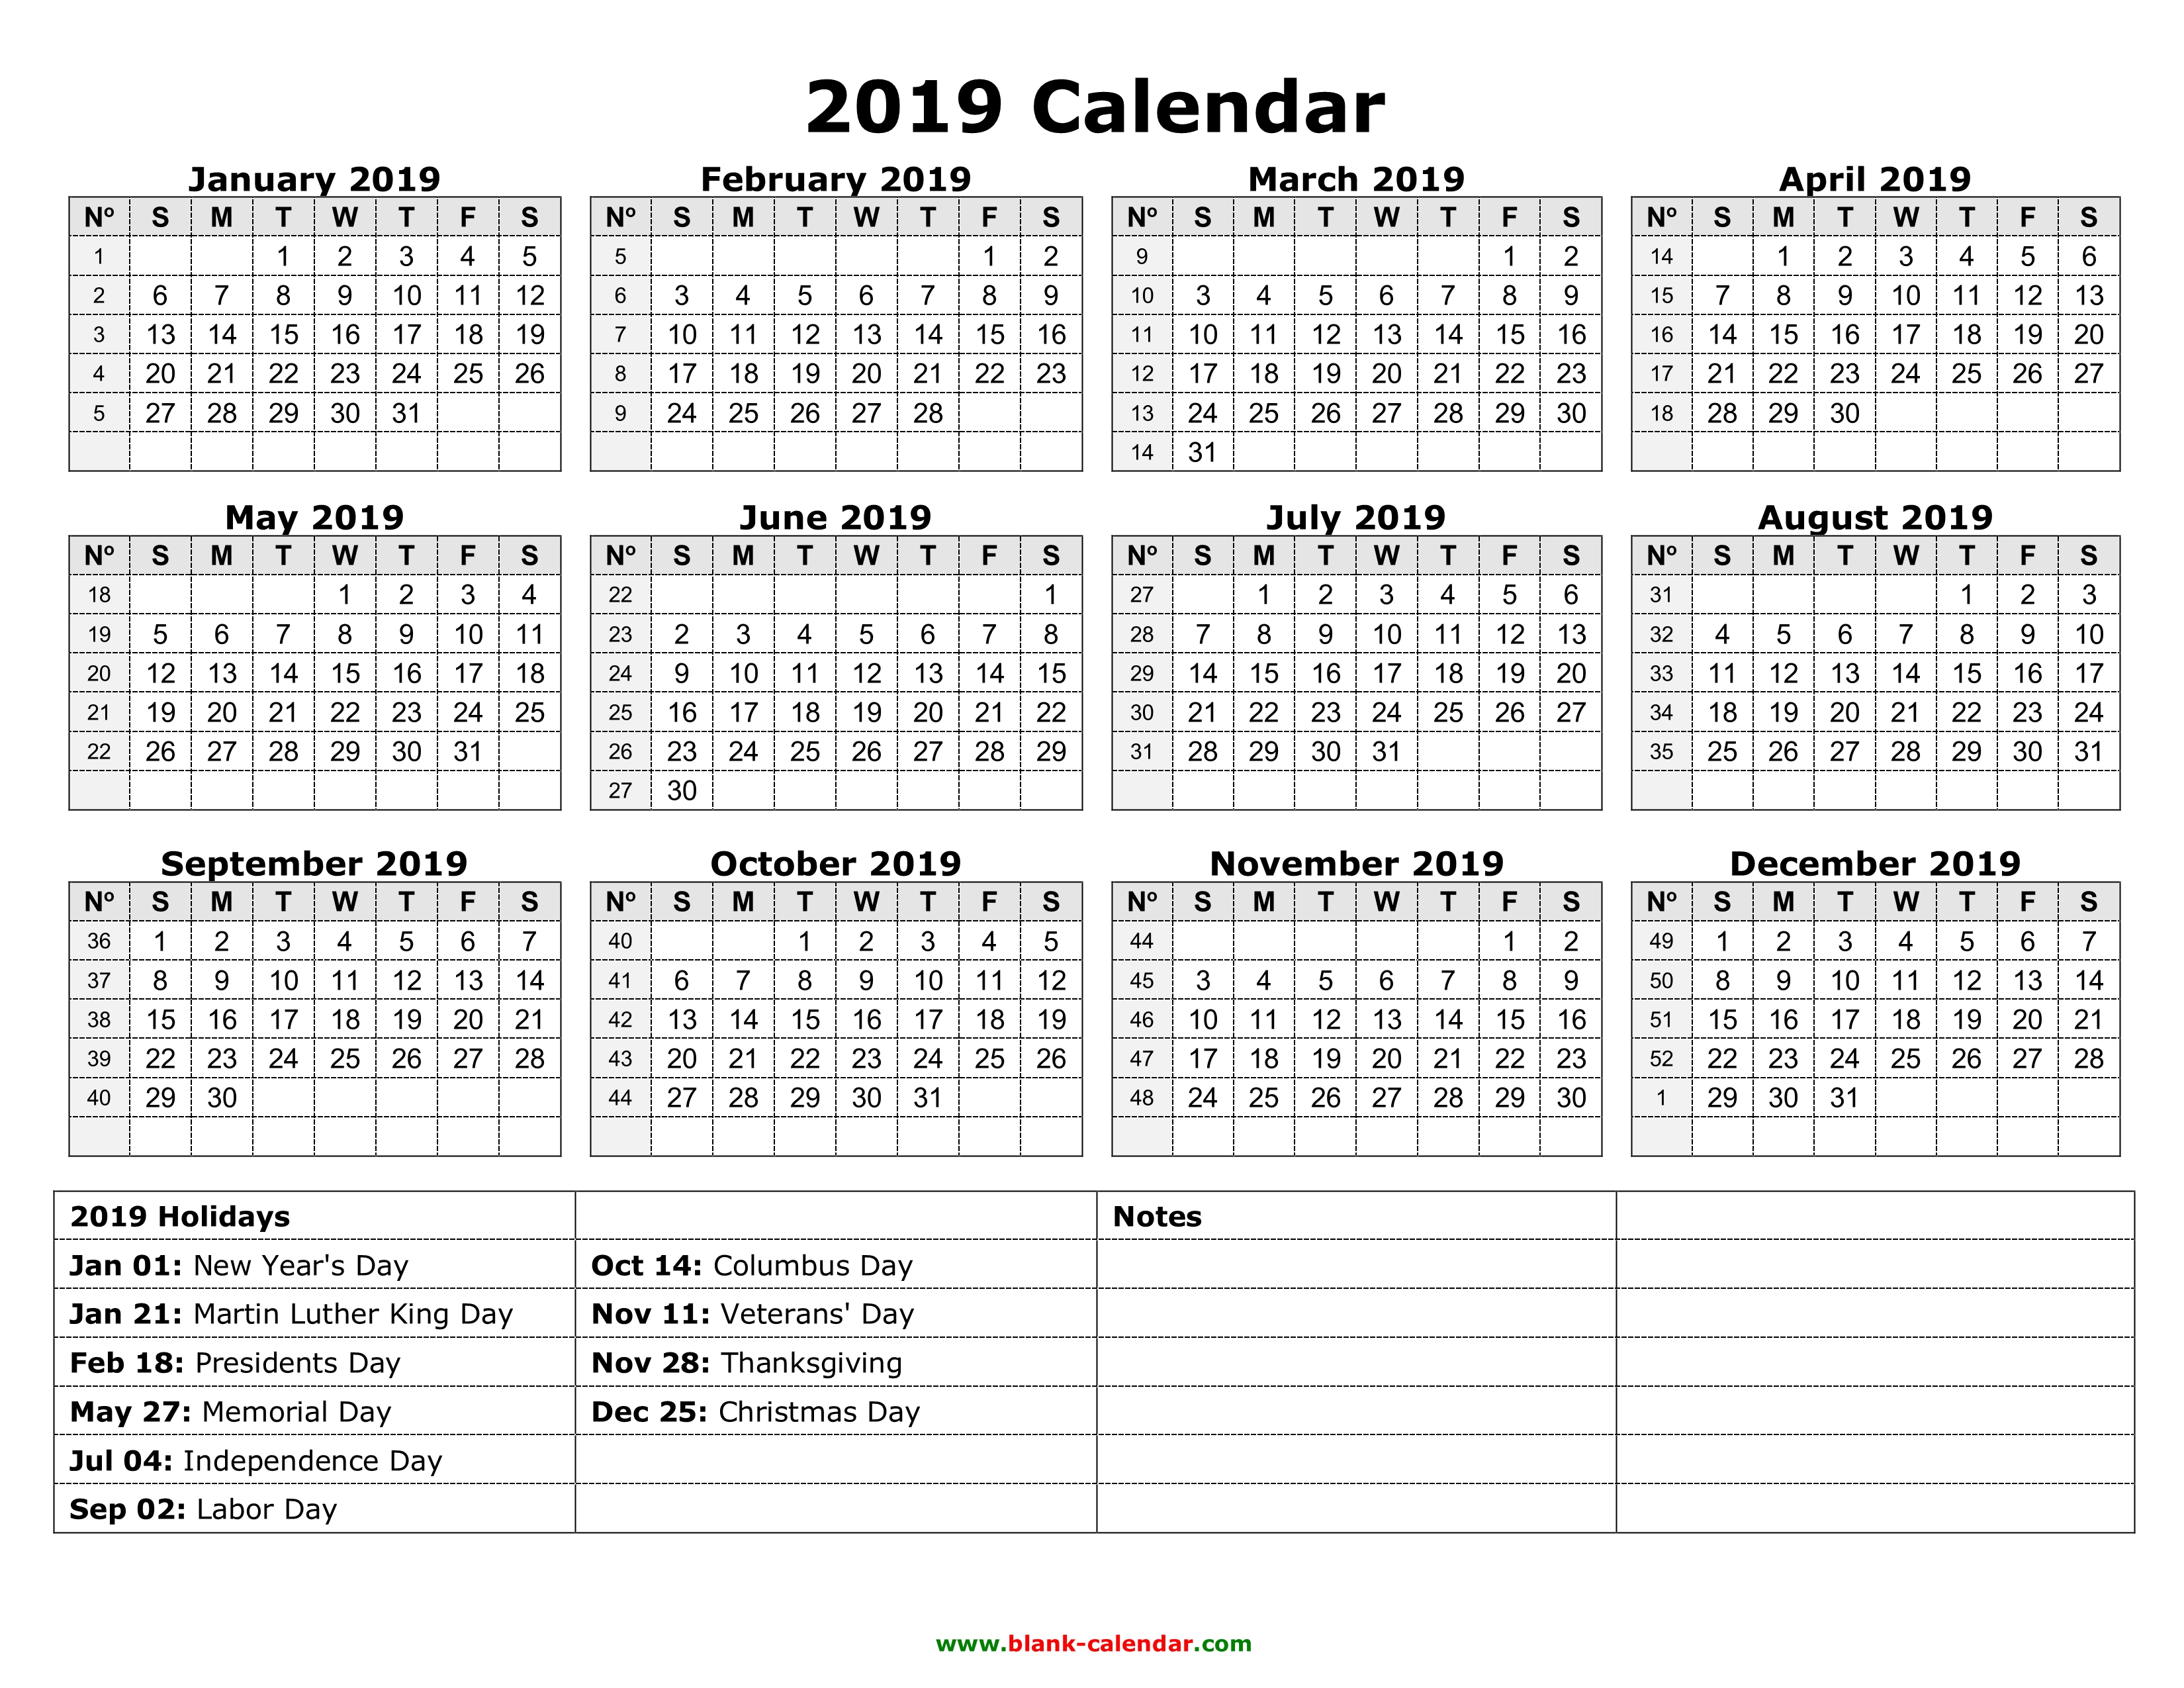 Yearly Calendar 2019 | Free Download And Print intended for Calendar 2019 2020 Free Download